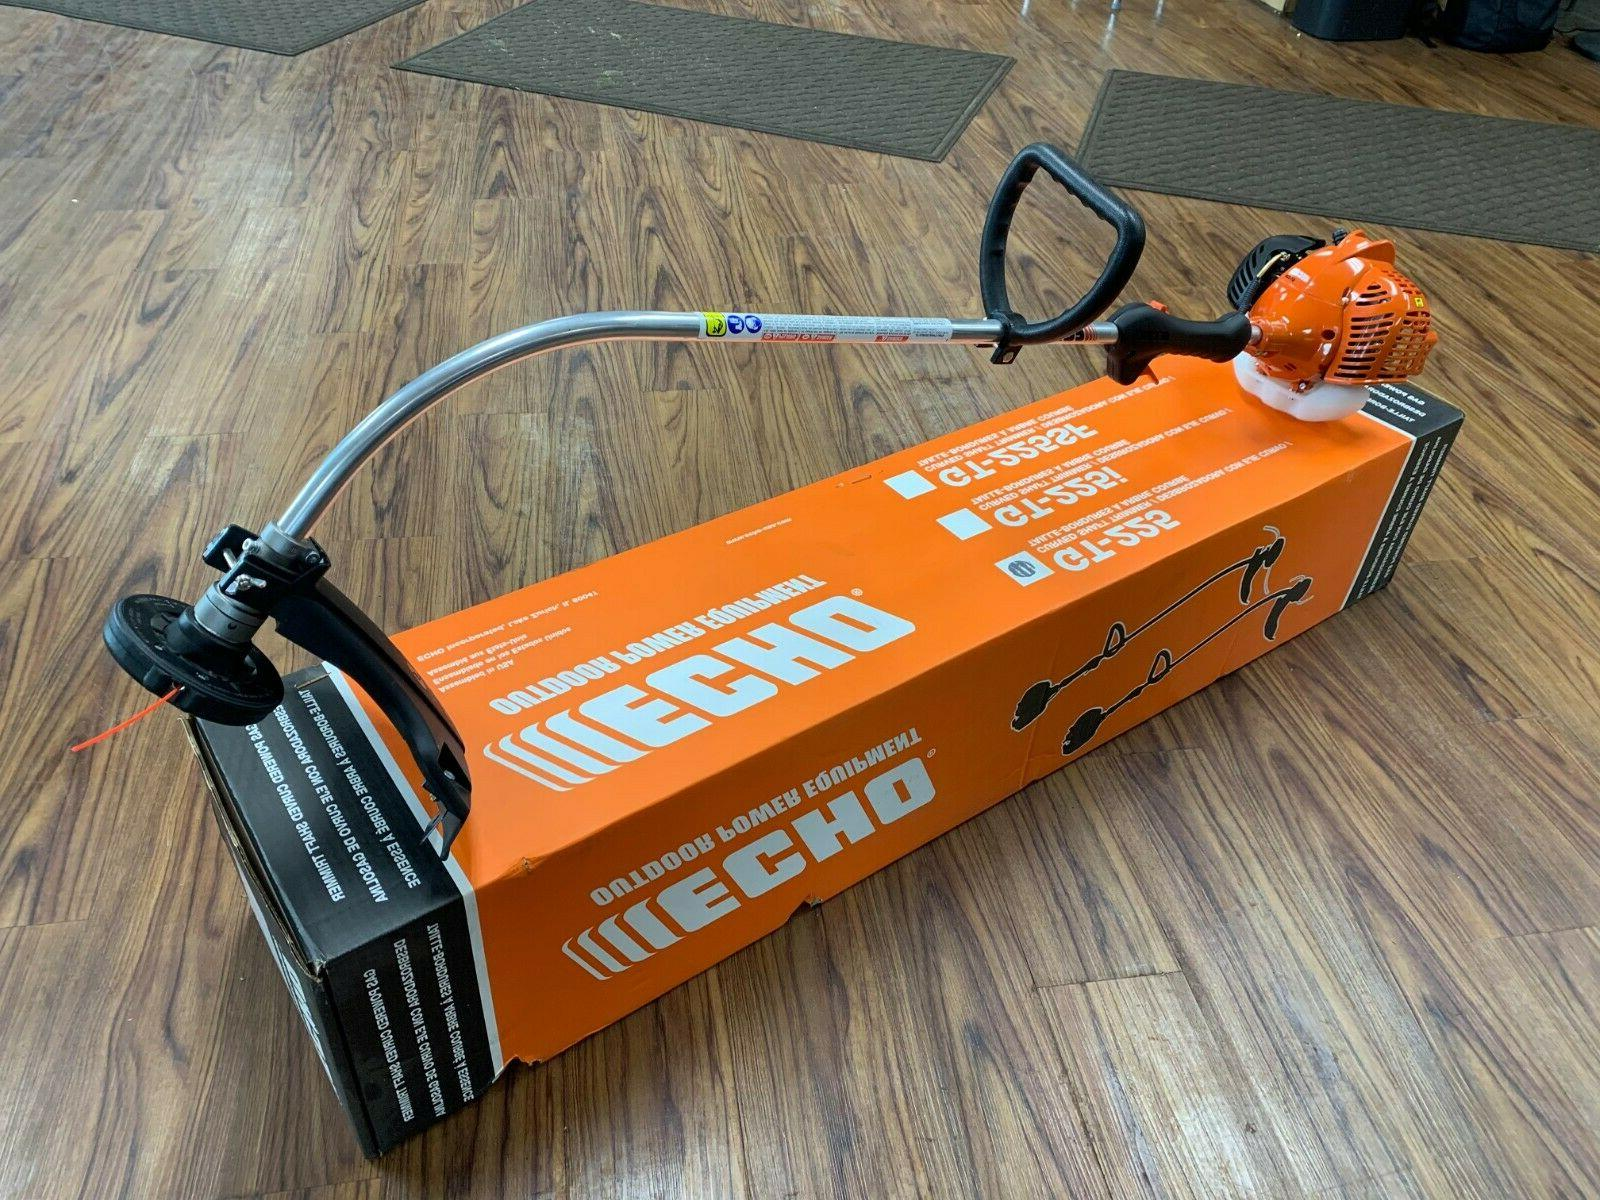 Brand New 225 SHAFT WEED TRIMMER 21.2cc 2